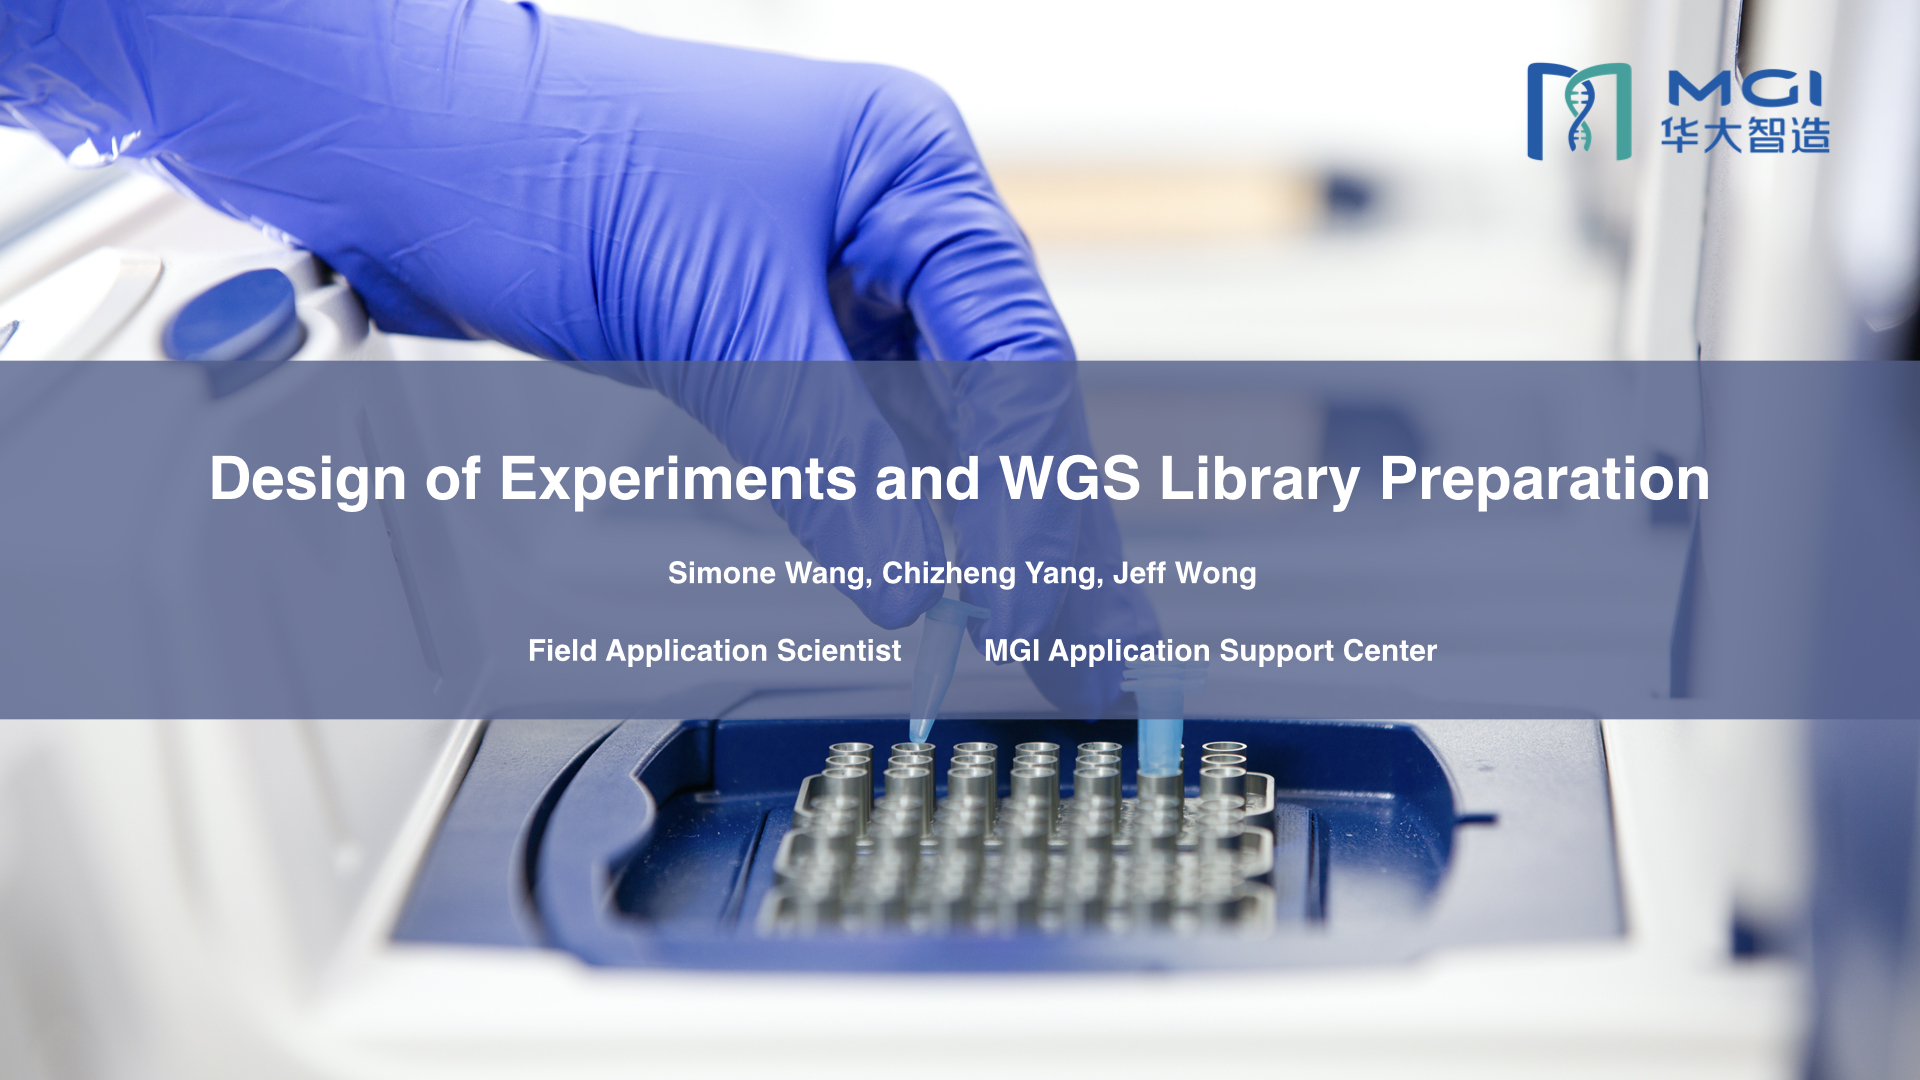 Design of experiments and WGS library preparation workflow